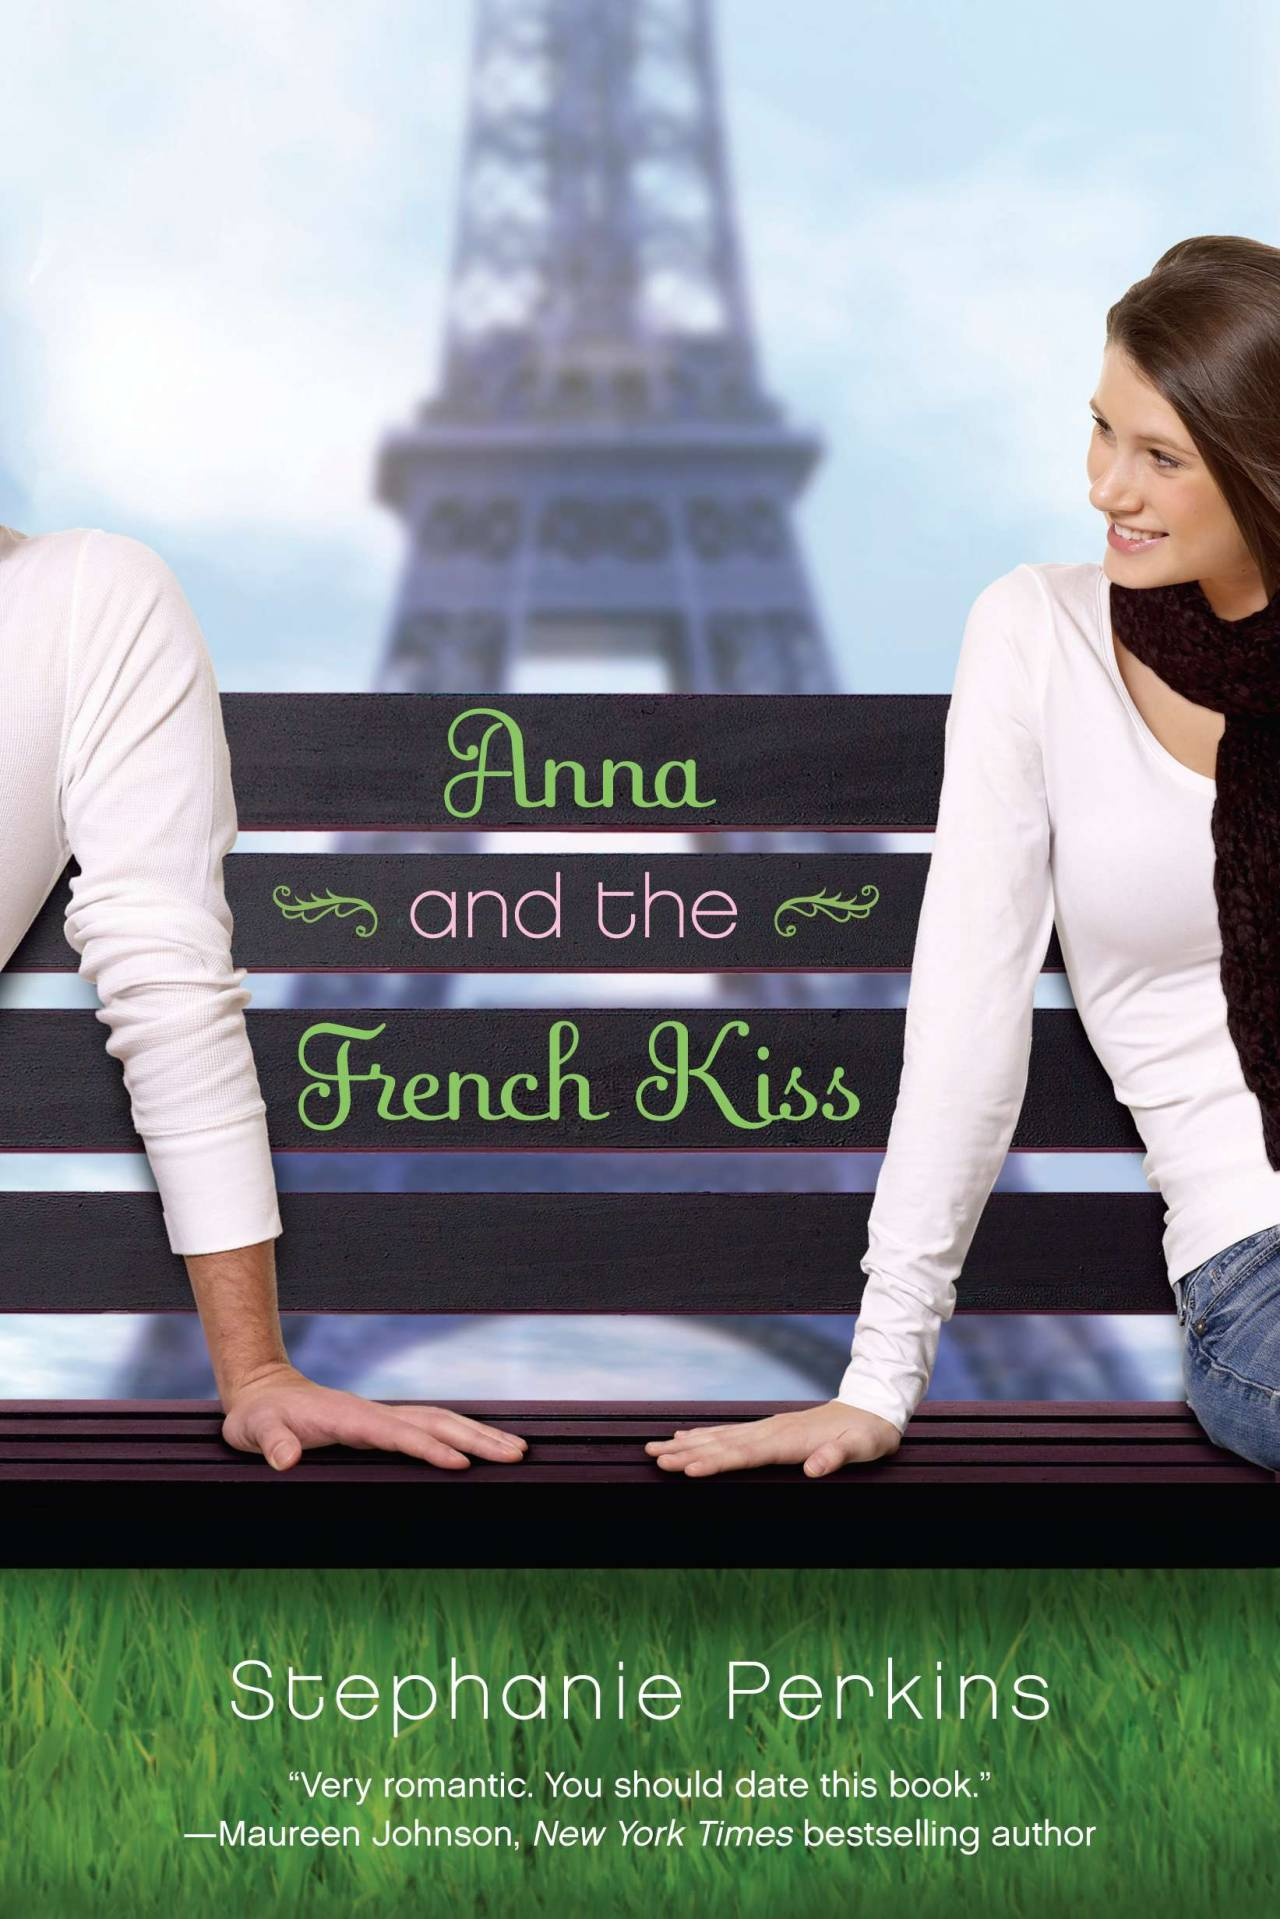 Deal alert! This coming Sunday (1/27/13), the lovely and adorable Anna and the French Kiss by Stephanie Perkins will be available wherever ebooks are sold for only $2.99!!! Mark your calendars! Buy from: Penguin Amazon Barnes and Noble Kobo iBookstore Remember: Sunday 1/27/13. One day only. Anna and the French Kiss. $2.99.